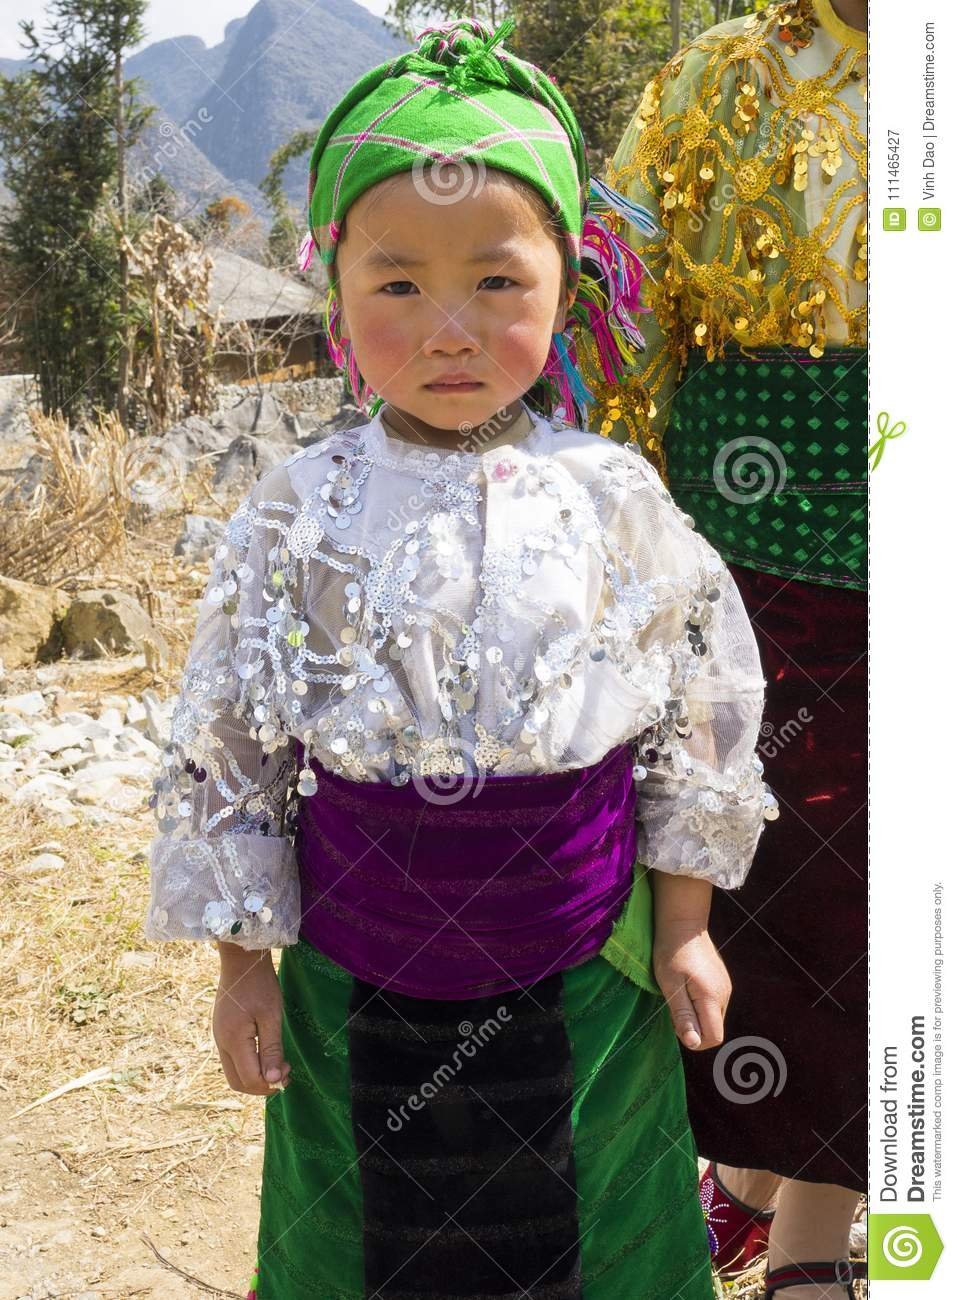 Ha Giang, Vietnam - Feb 7, 2014: Portrait of unidentified Hmong child in Ha Giang. The Hmong are an Asian ethnic group from the mo